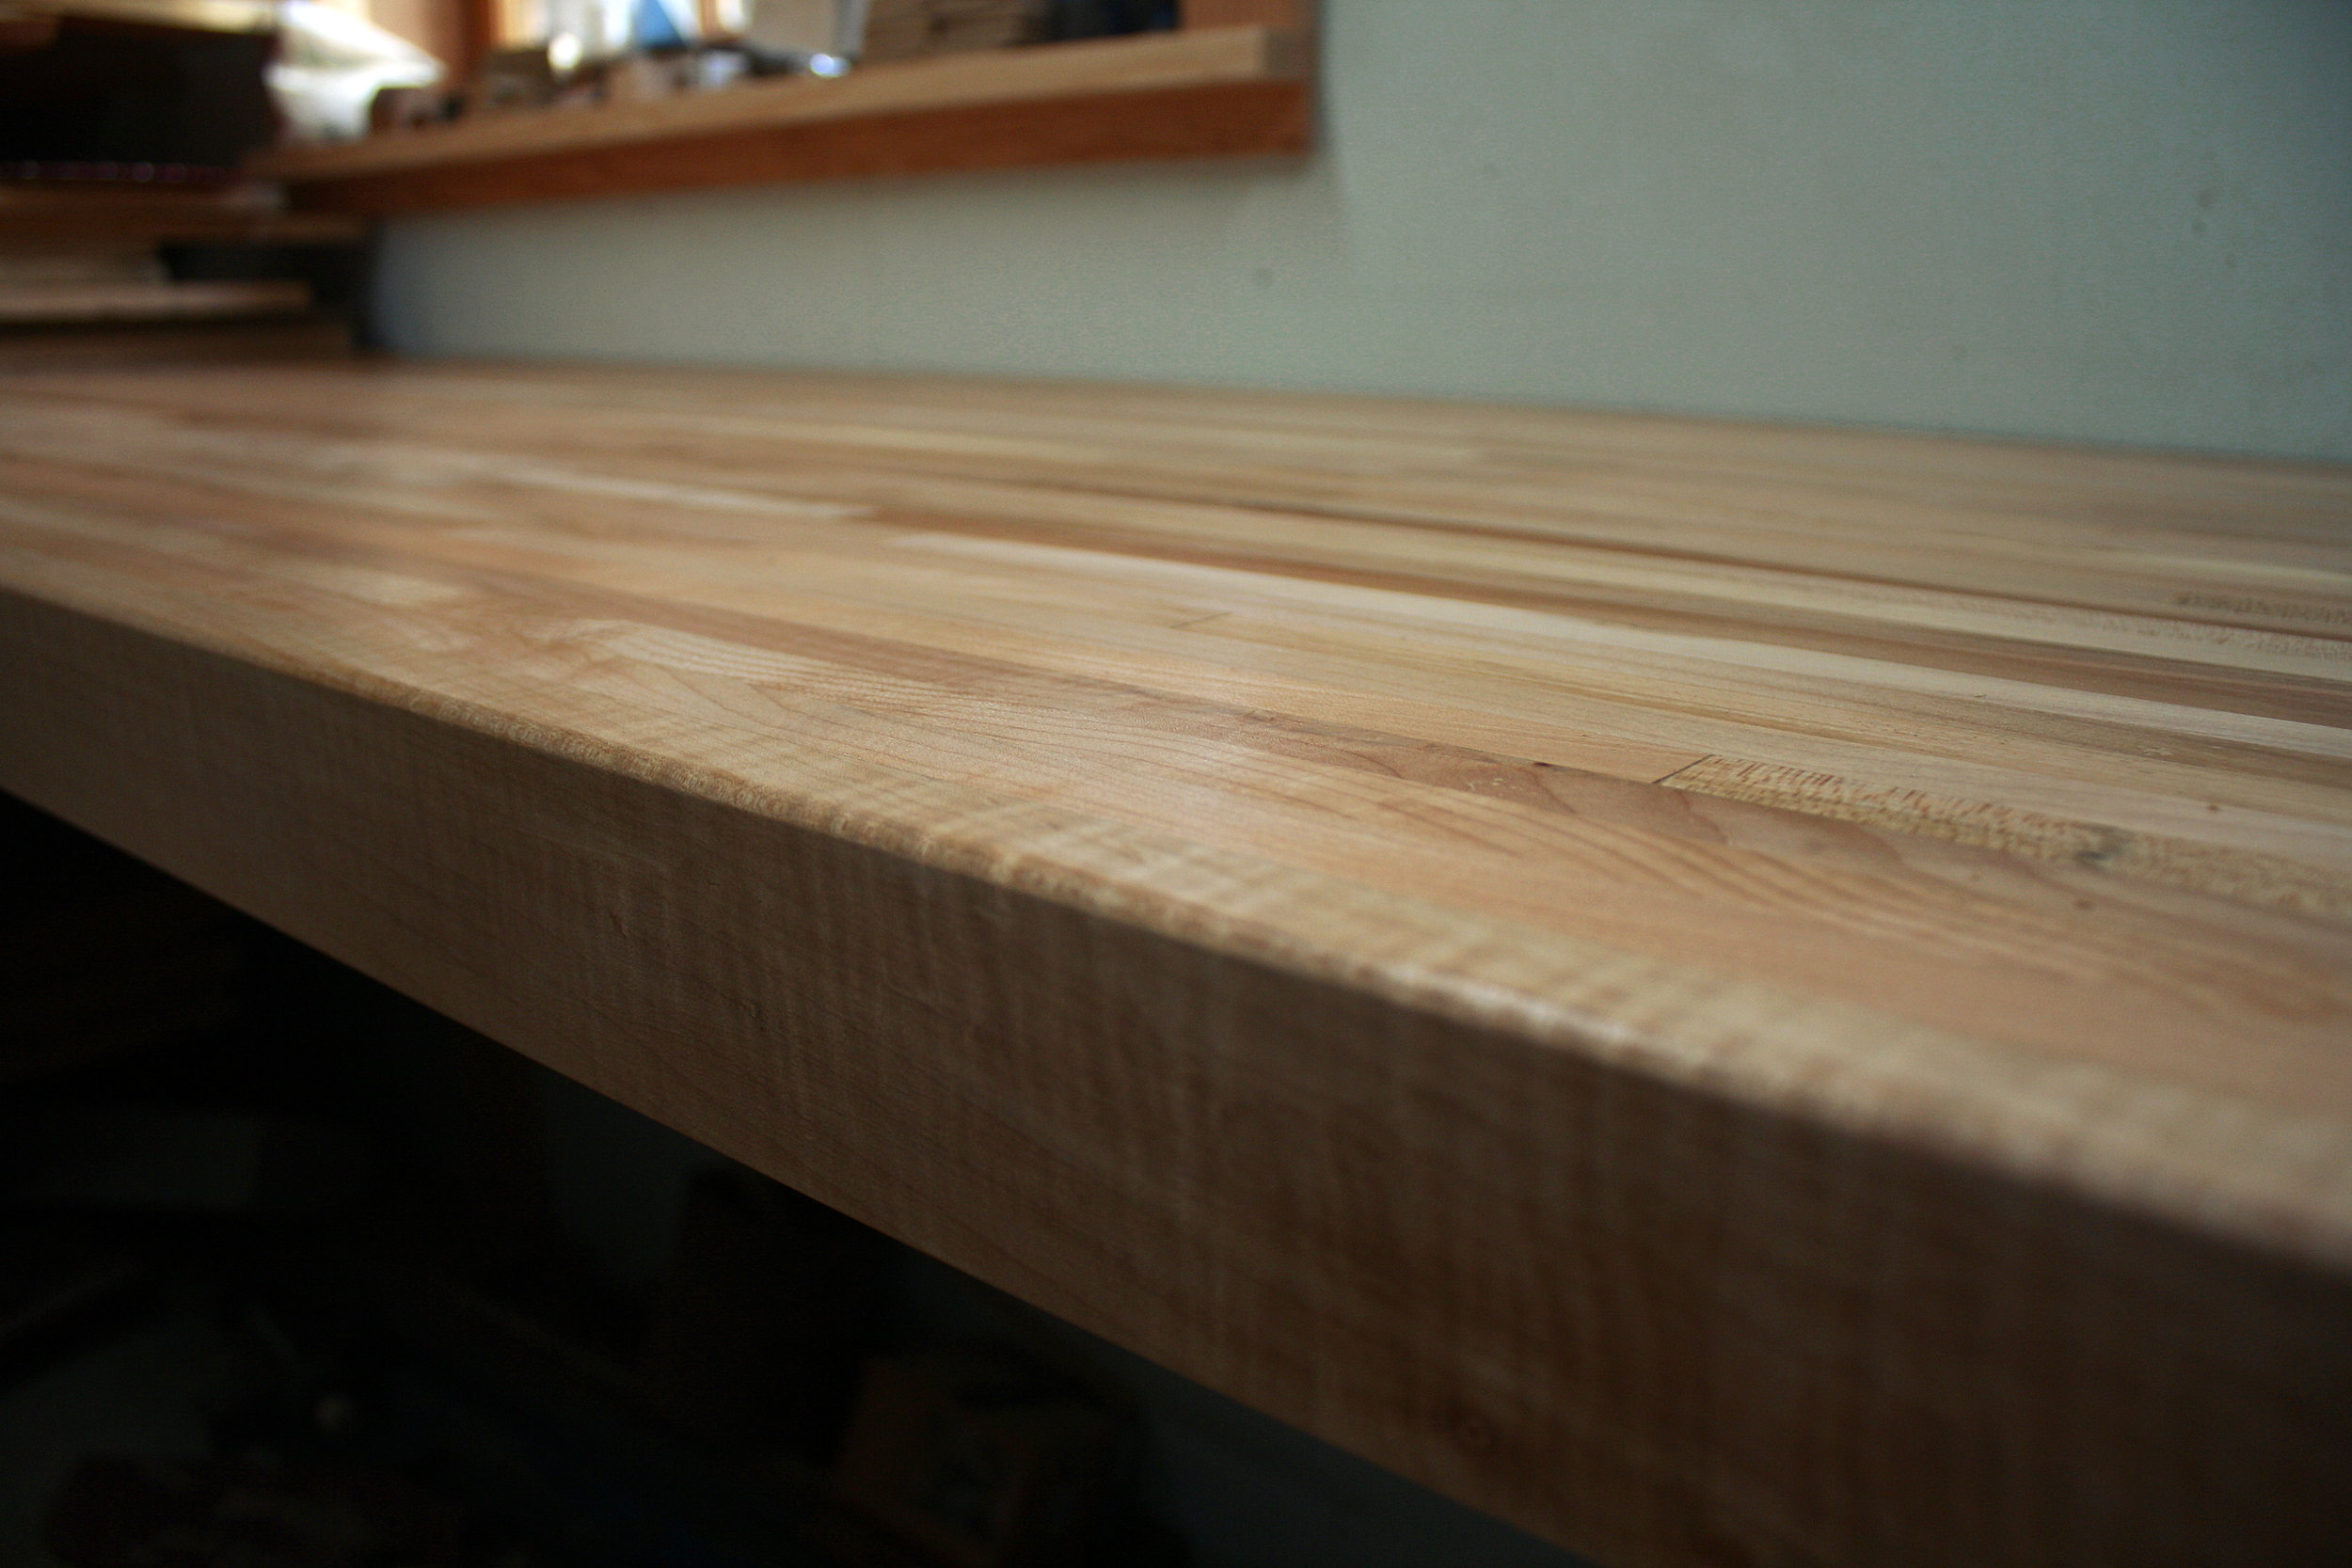 This set up is ideal for workbench tops. This top spans 12 feet, allowing for lots of storage underneath